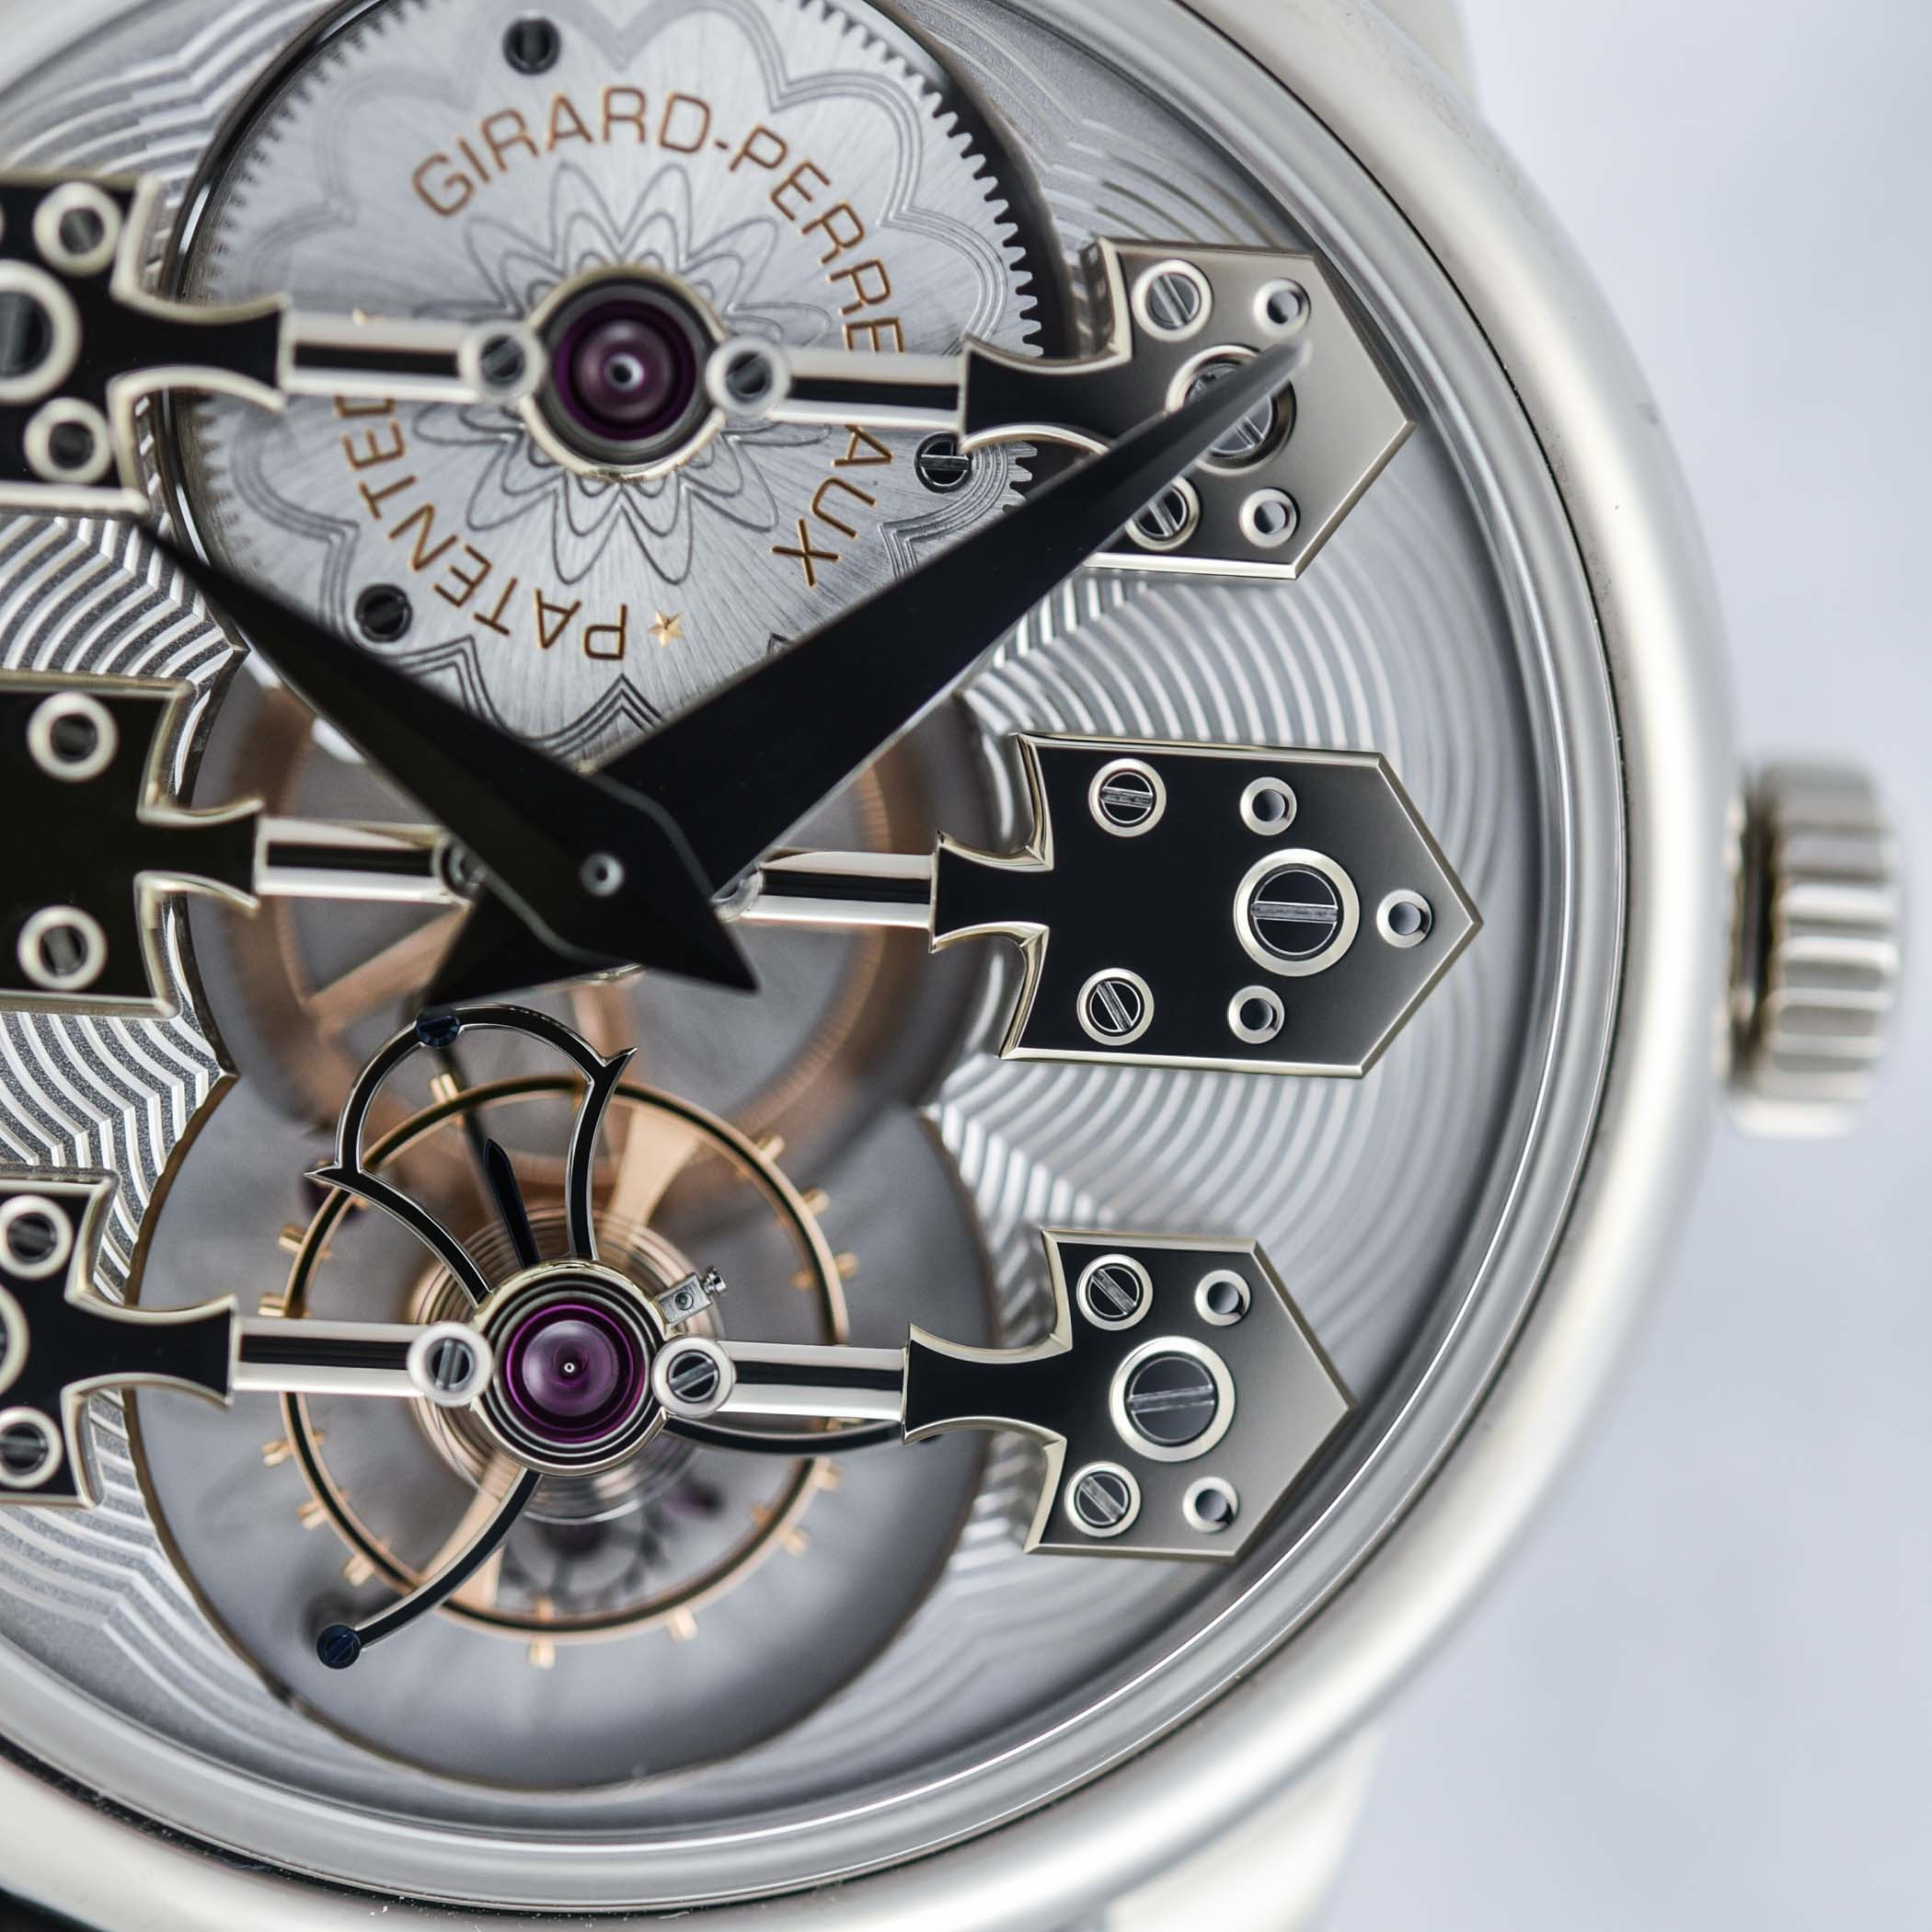 Girard-Perregaux La Esmeralda Tourbillon With Three Gold Bridges